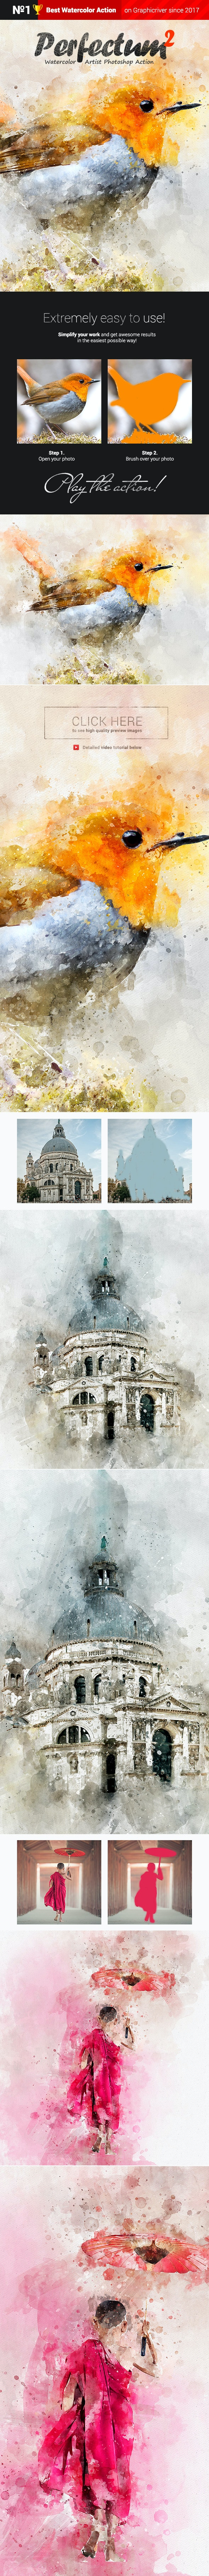 Watercolor Artist - Perfectum 2 - Photoshop Action - Photo Effects Actions